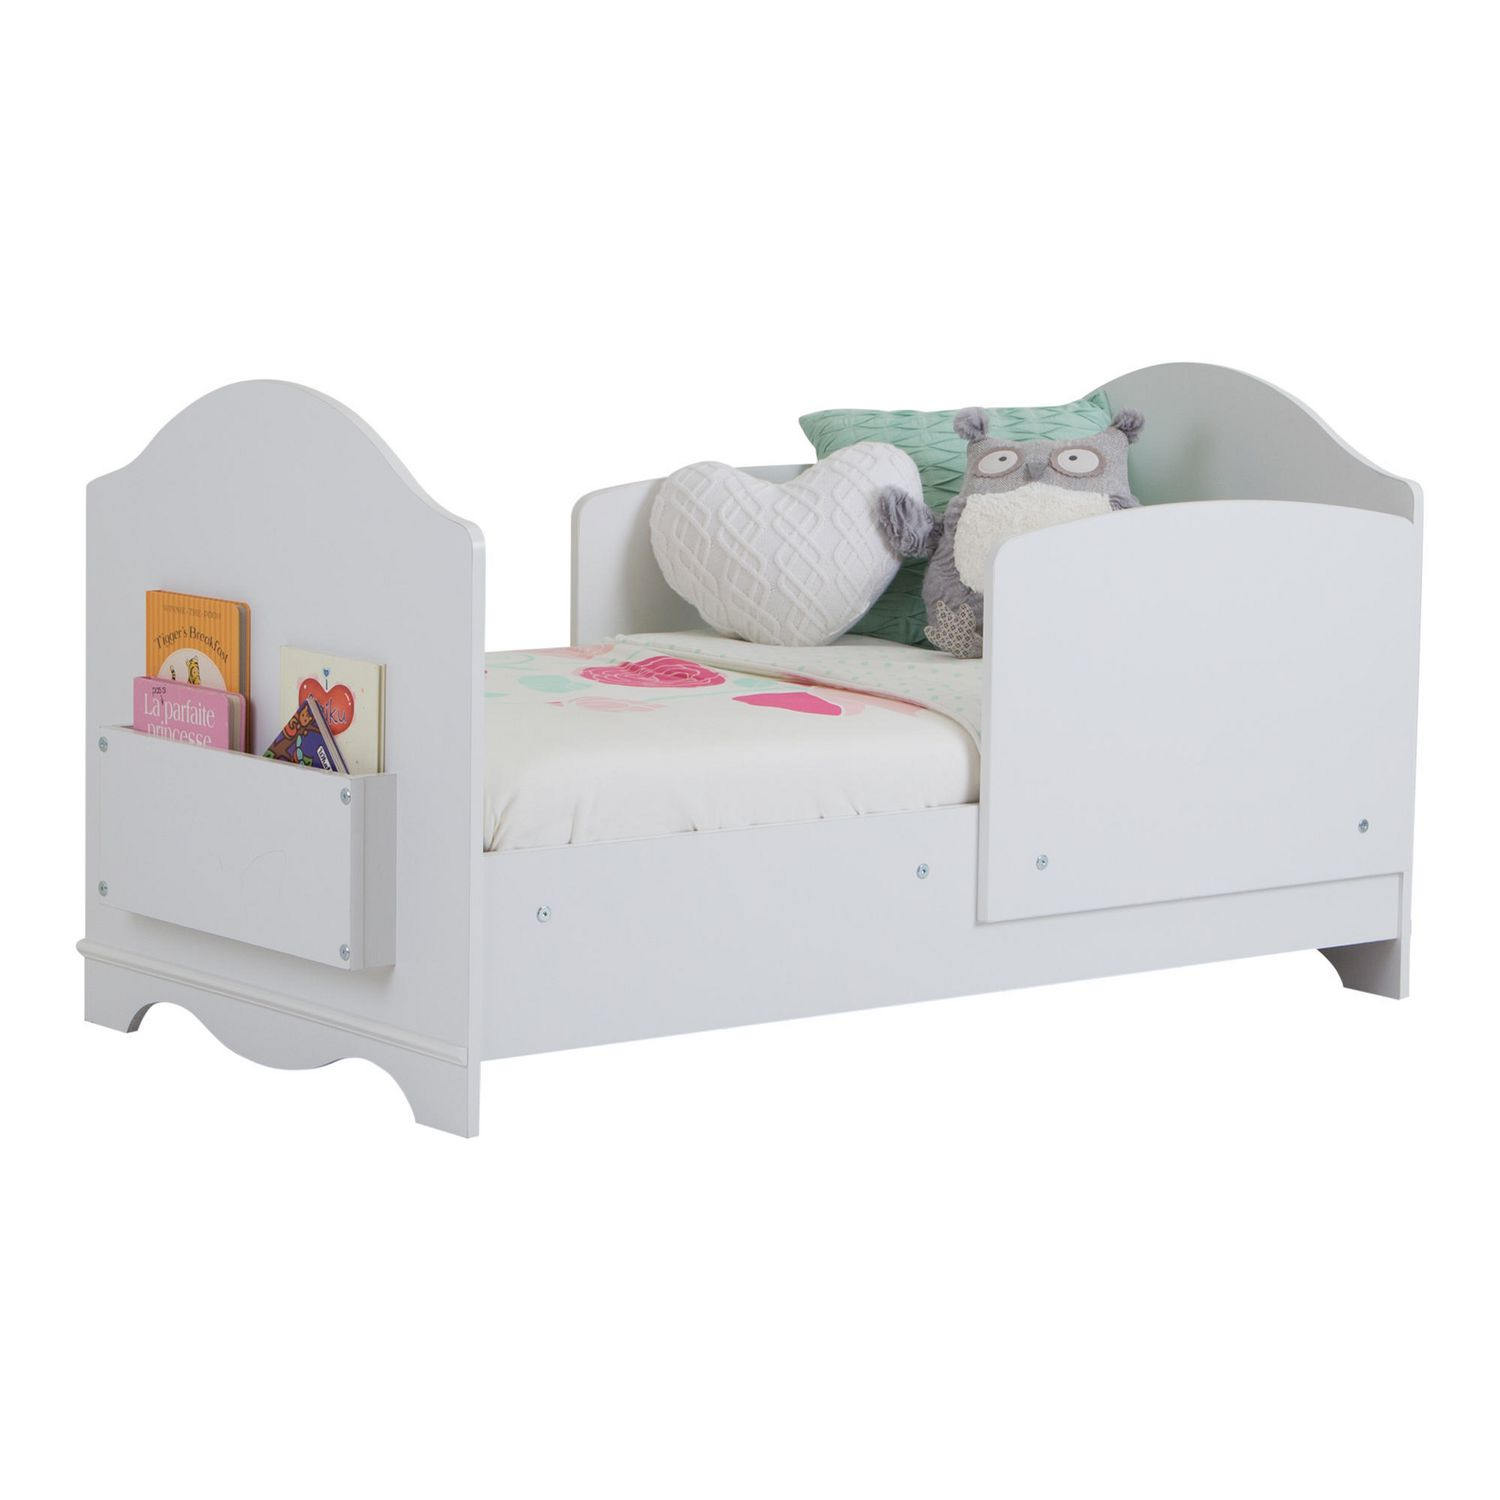 South Shore Savannah Toddler Bed